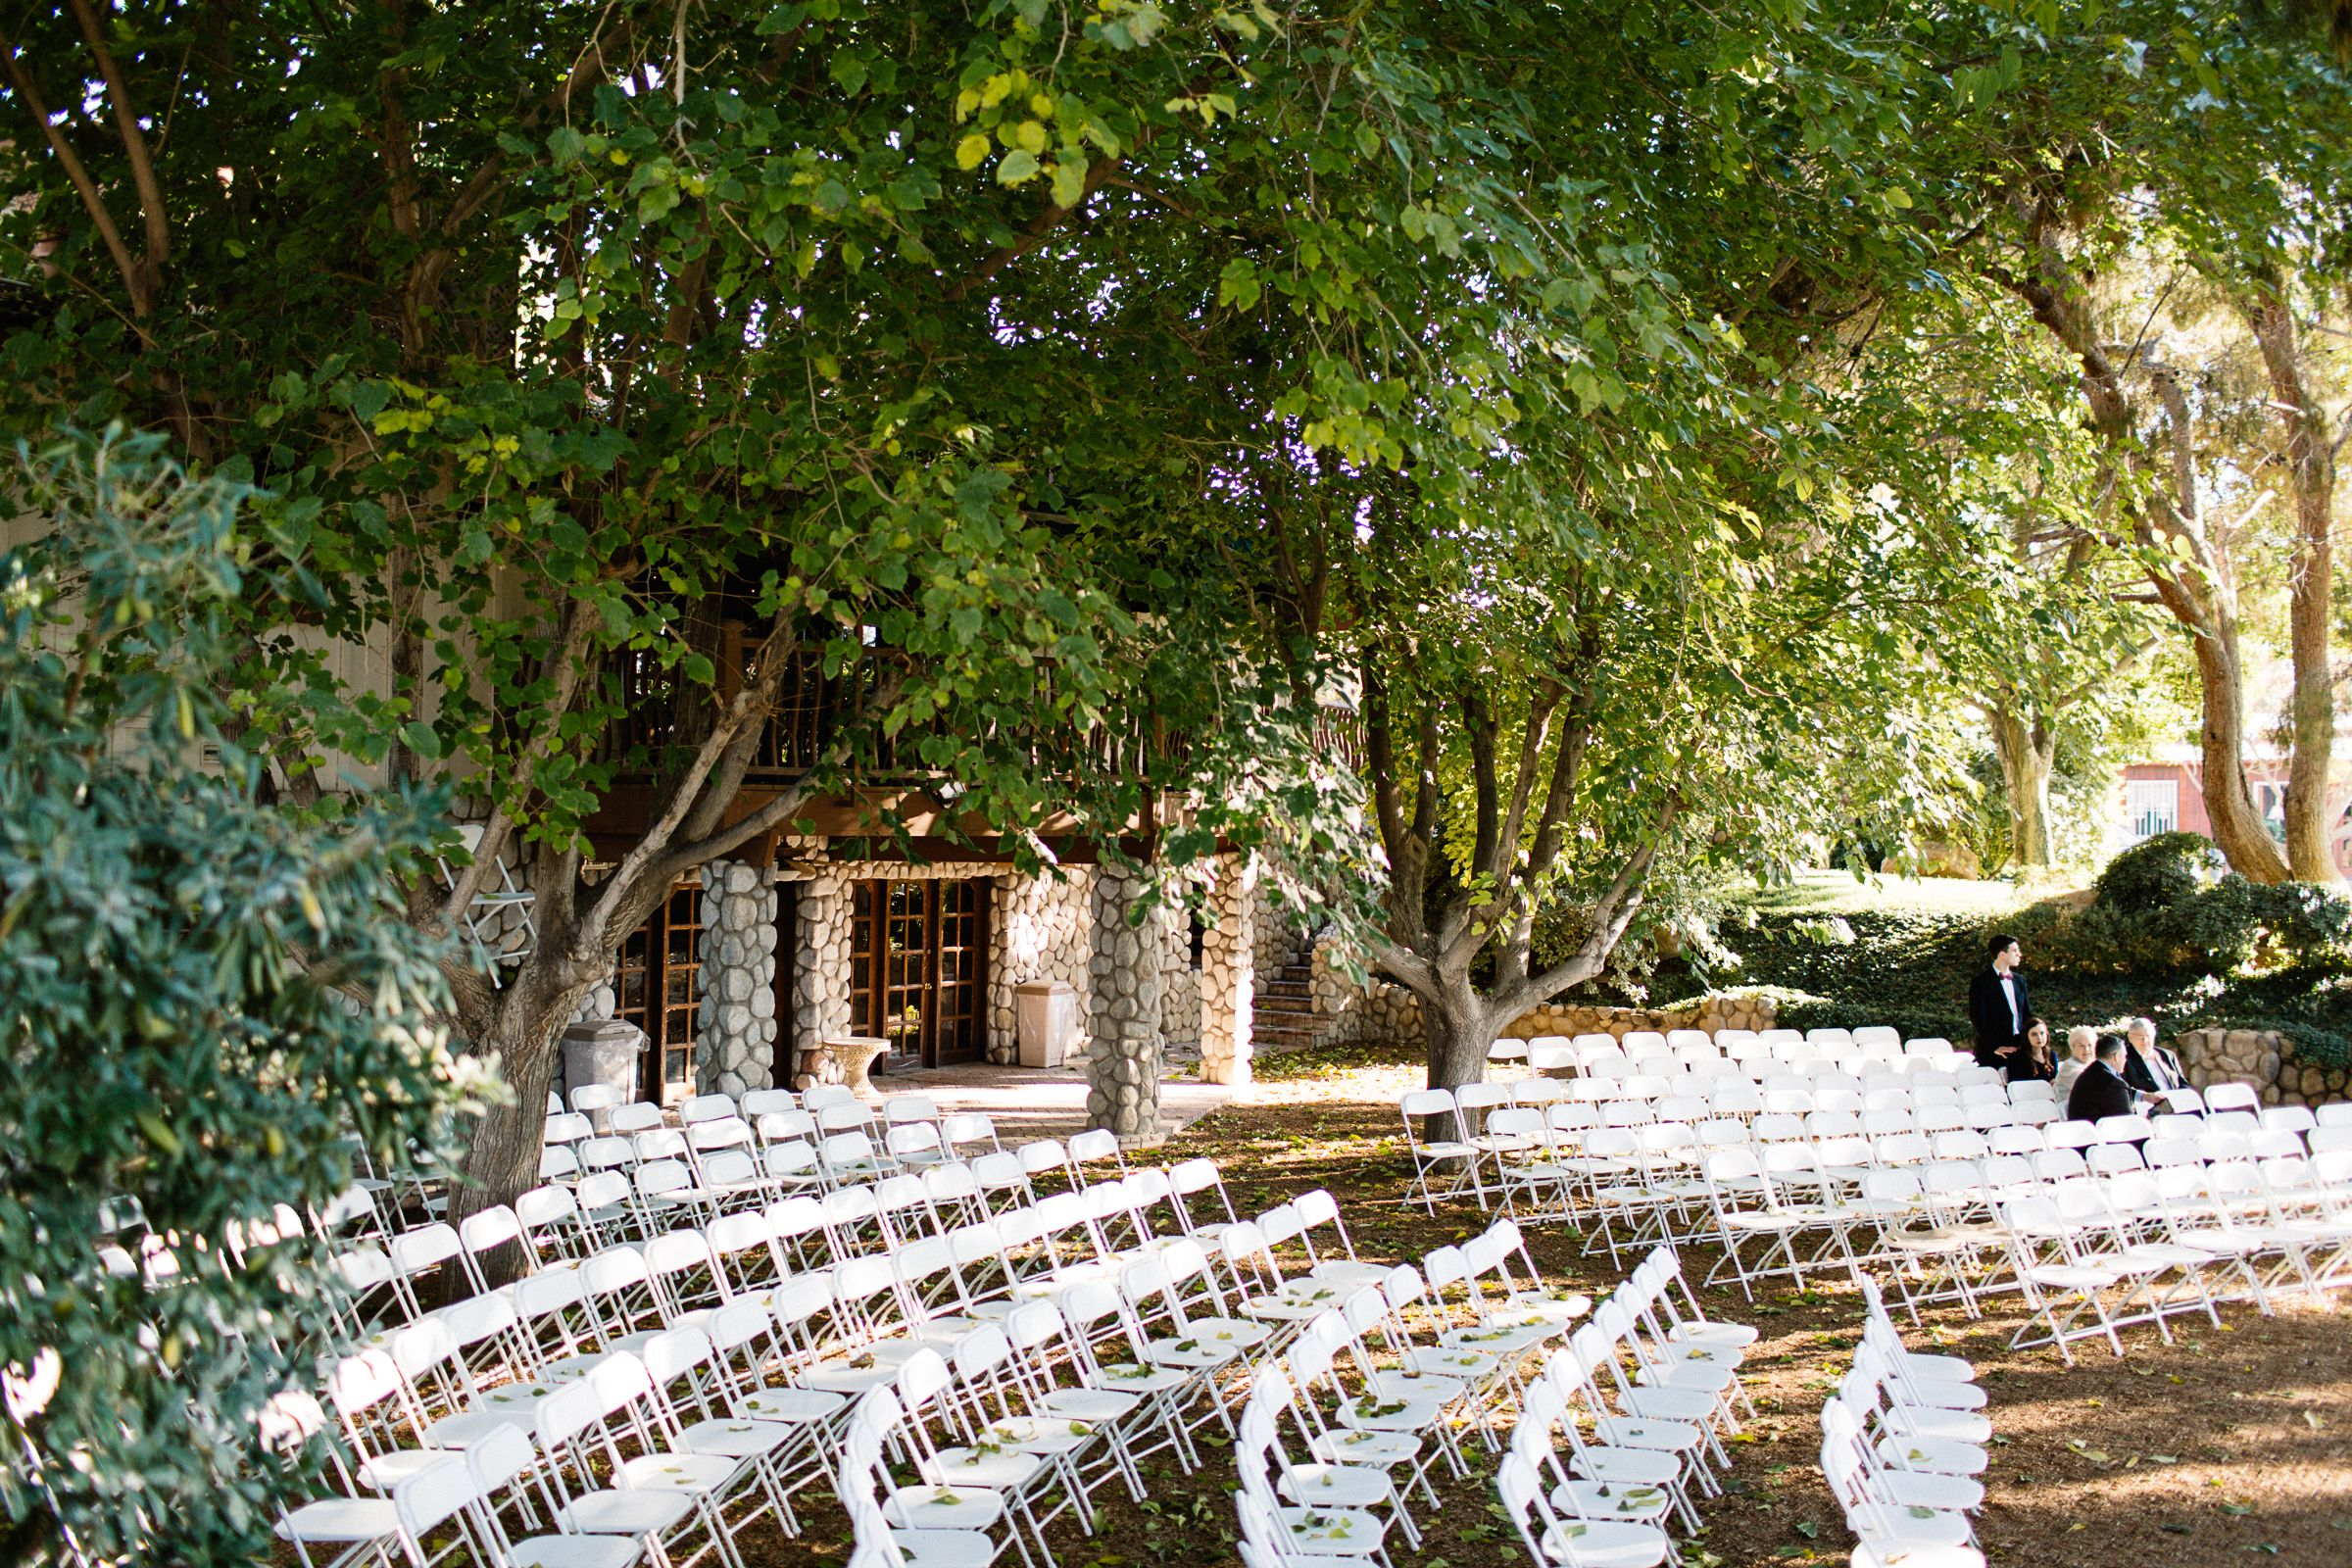 Green Grove of Trees in the Rustic Legends Ranch in Las